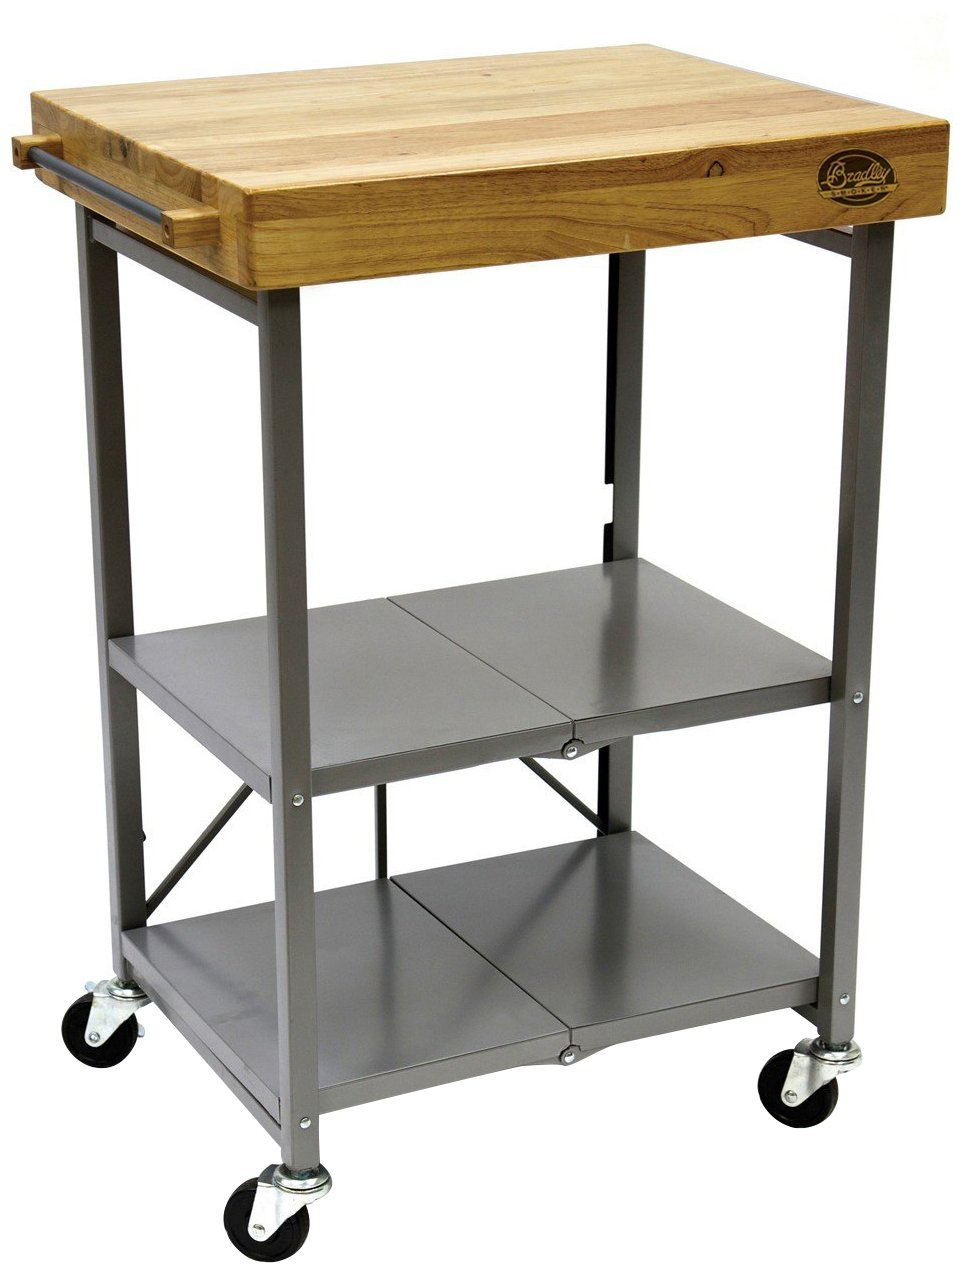 Bradley Smoker Foldable Kitchen Cart Bradley Smoker USA Inc. BTKITCART